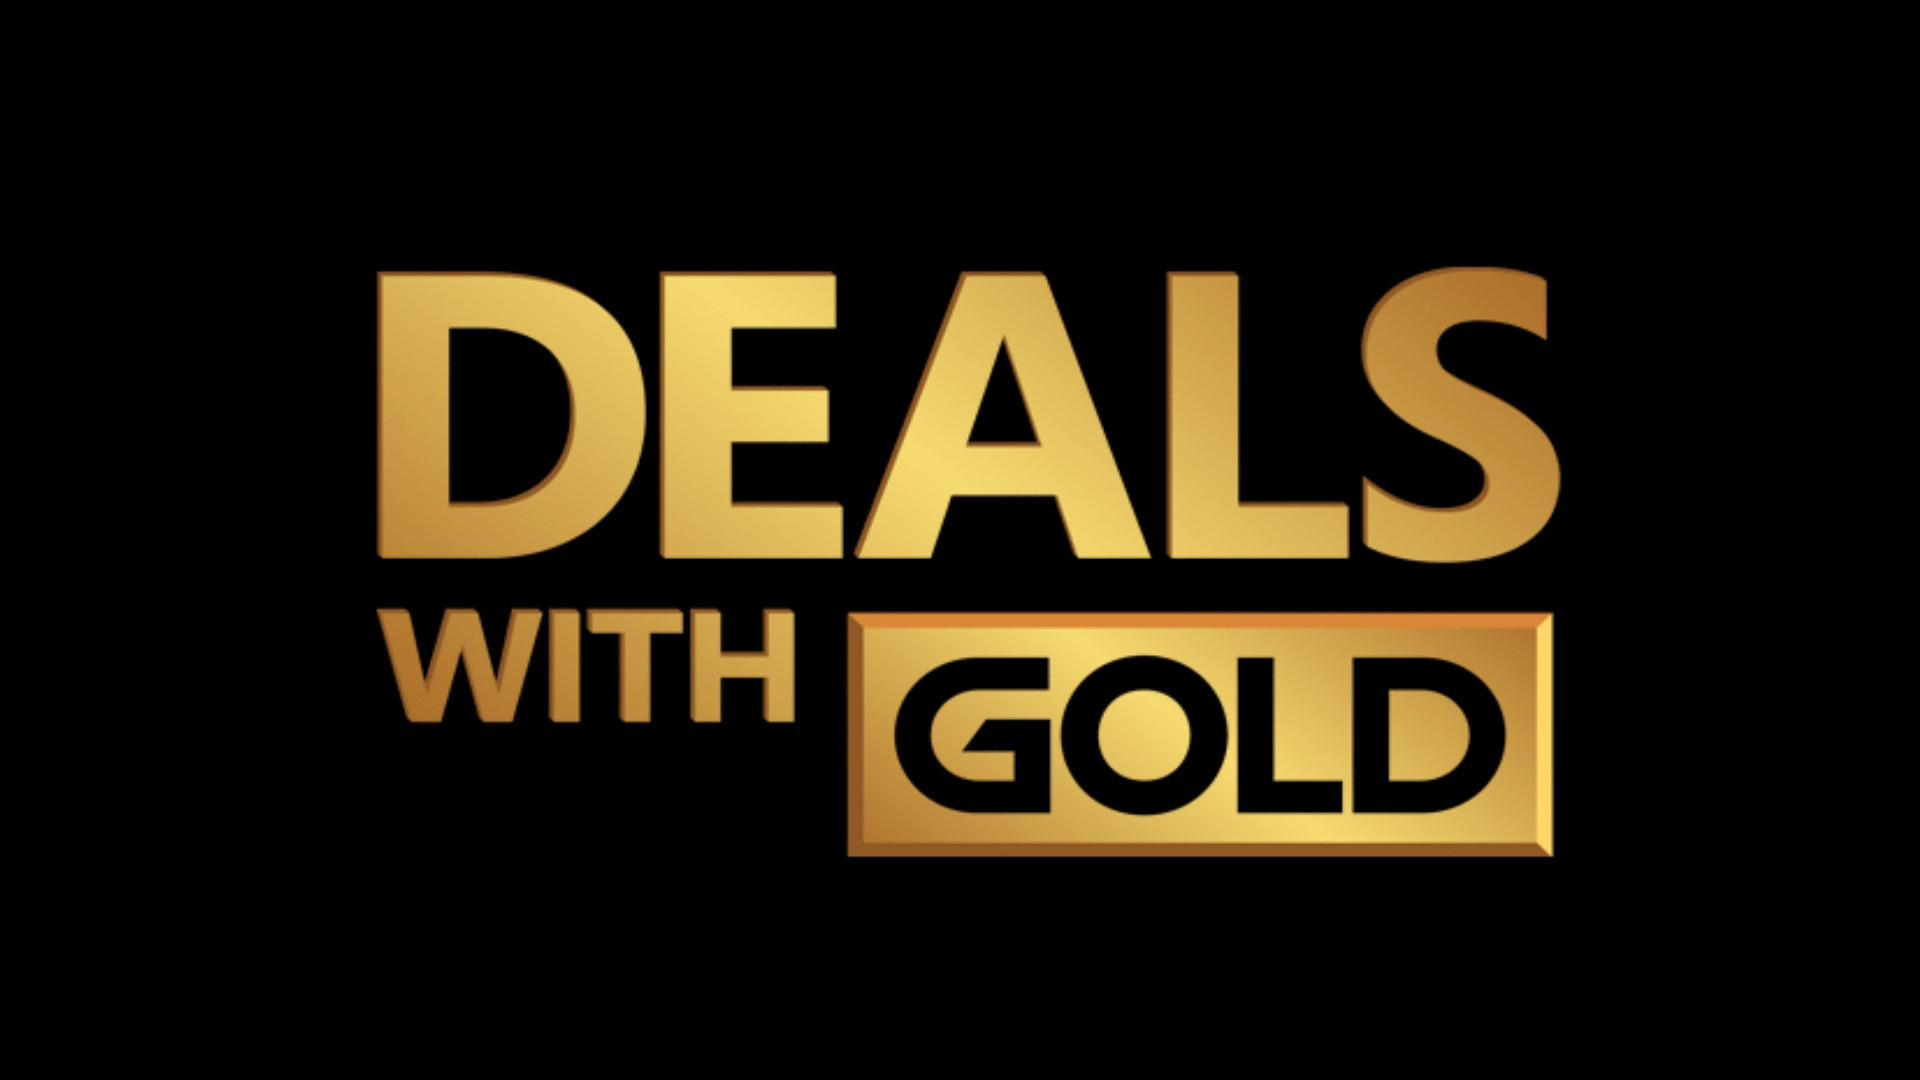 Deals with Gold semaine 16